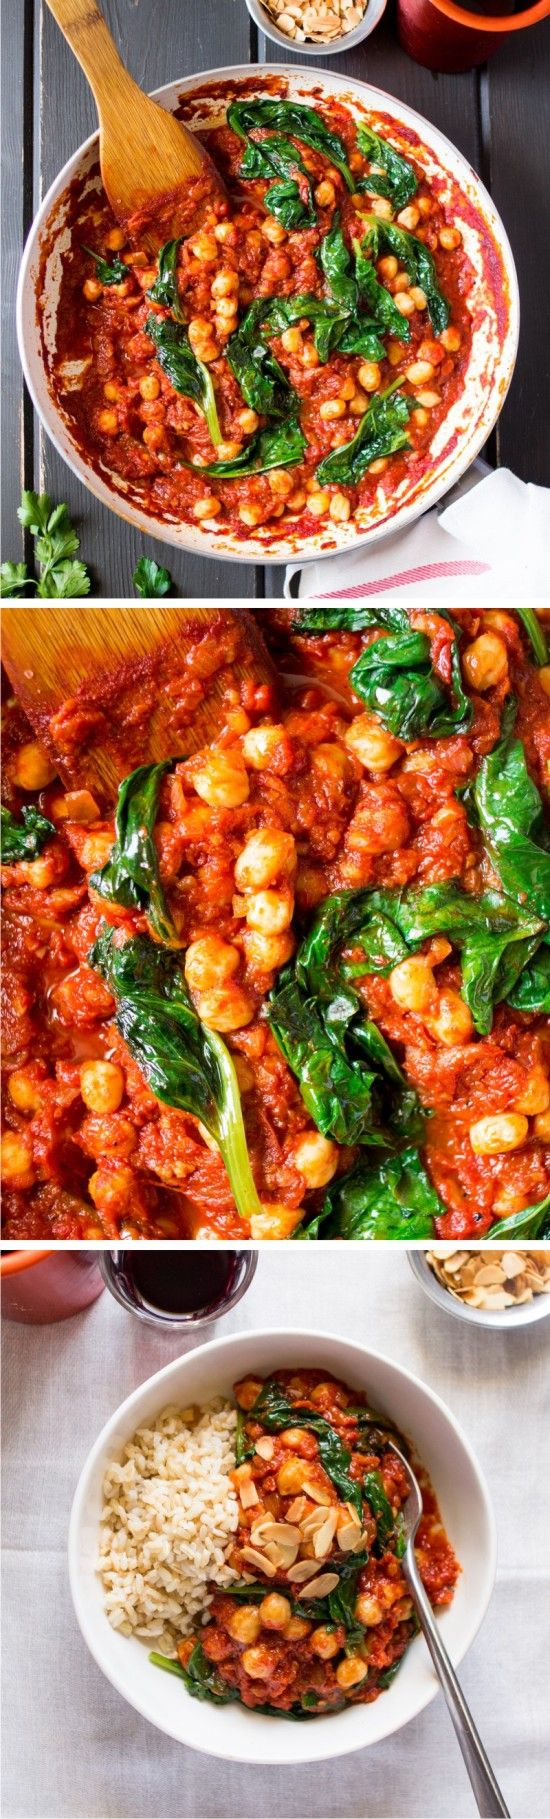 SPANISH CHICKPEA AND SPINACH STEW - healthy, recipes, spinach, vegan